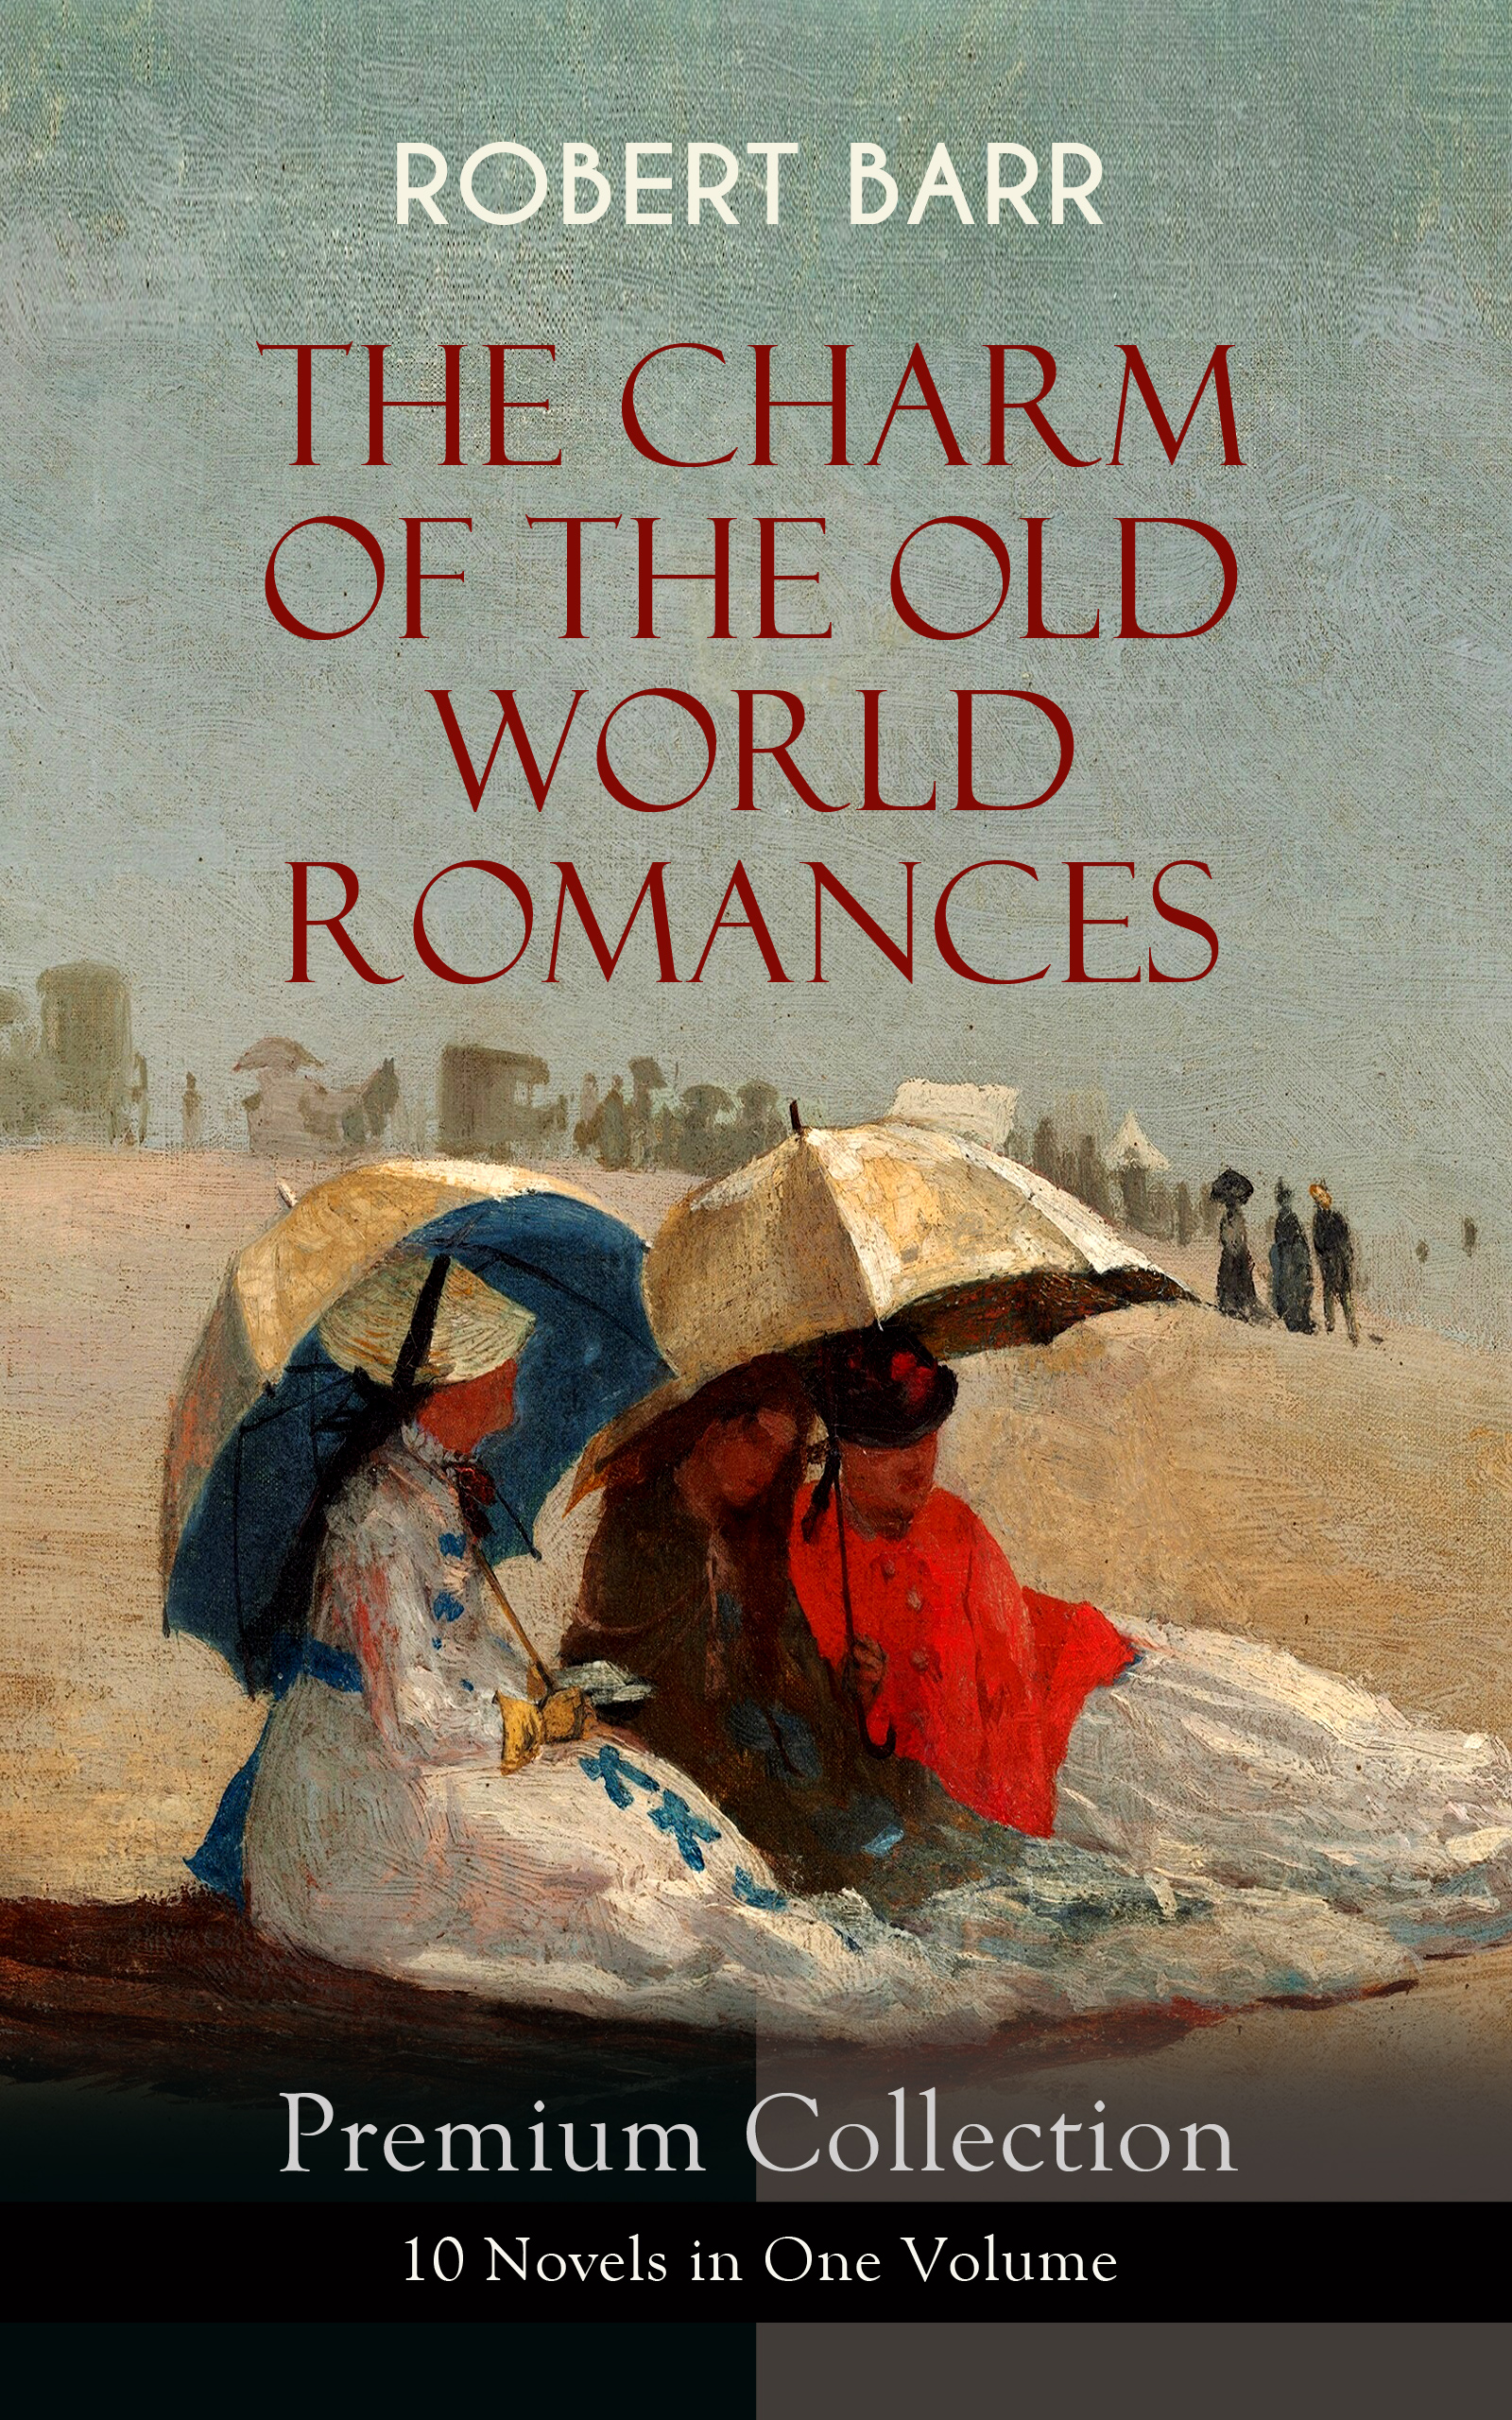 Robert Barr THE CHARM OF THE OLD WORLD ROMANCES – Premium Collection: 10 Novels in One Volume